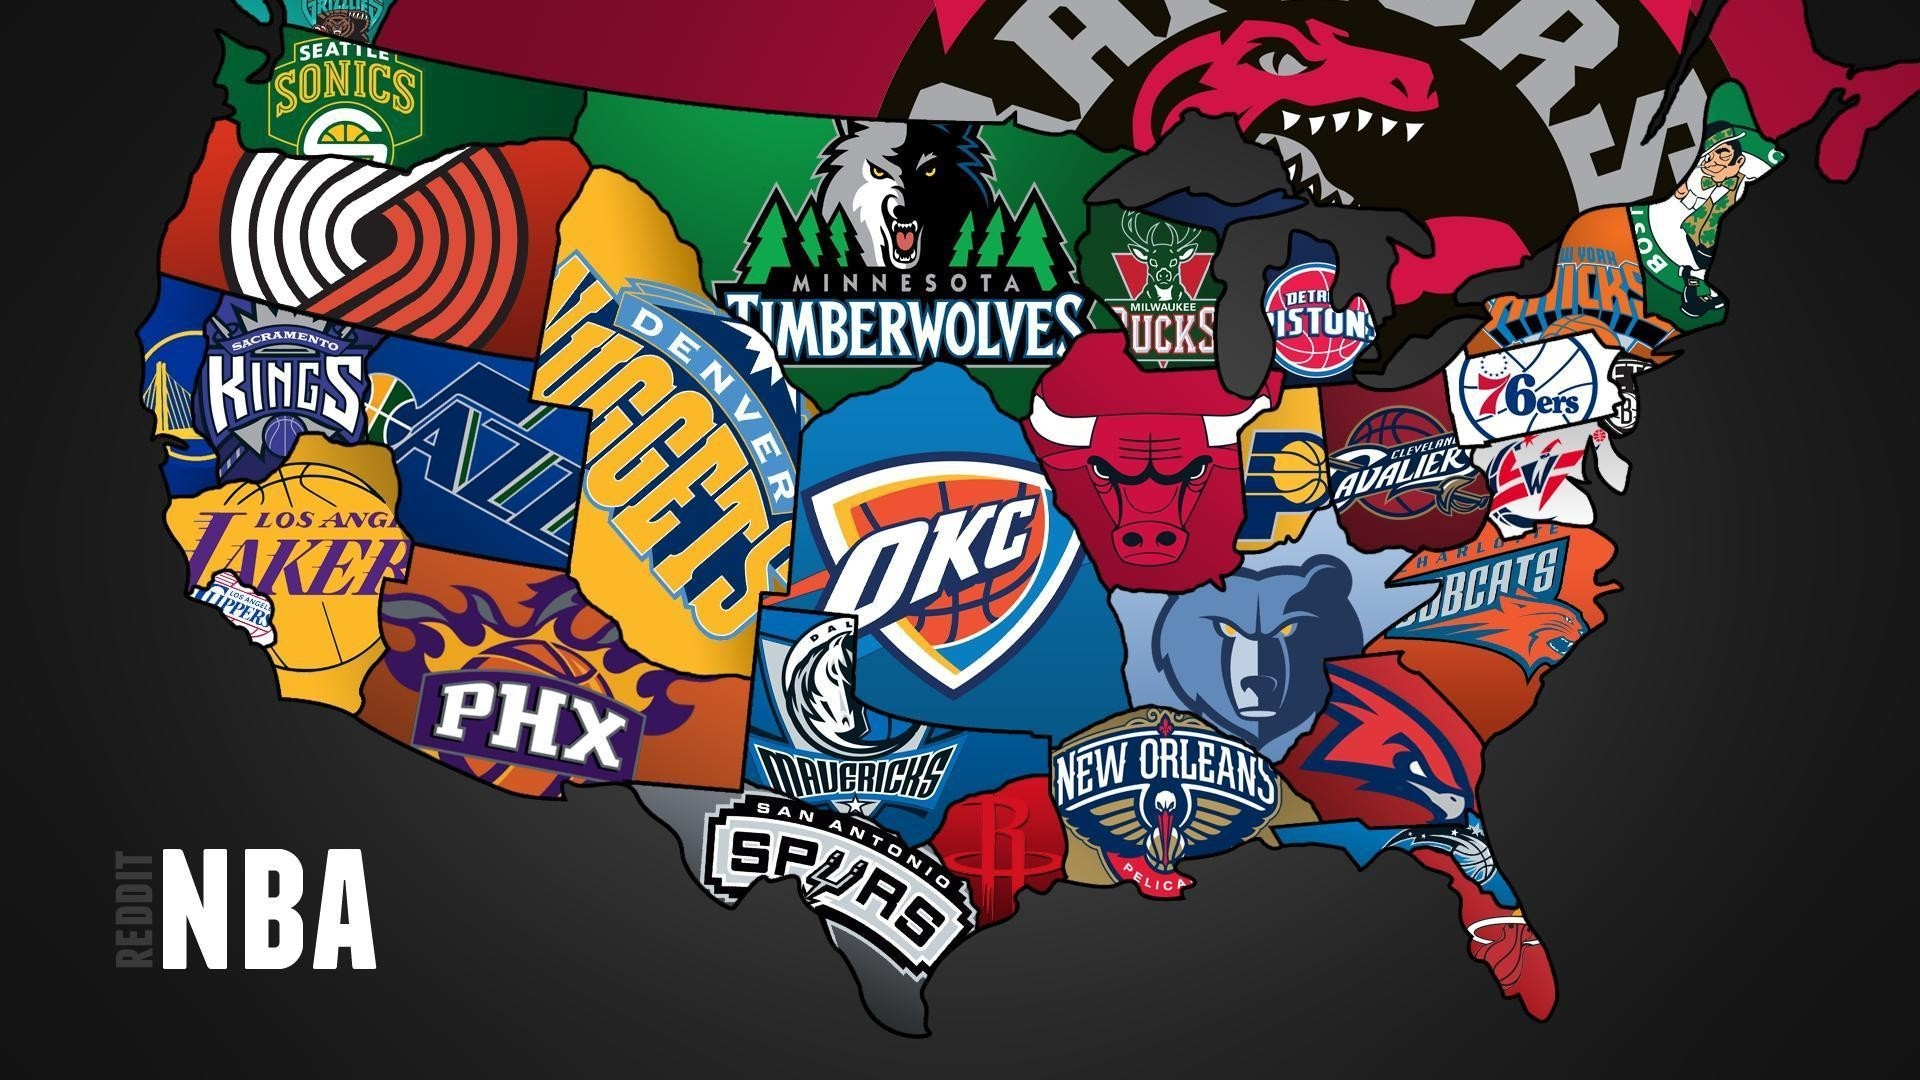 Cool basketball wallpapers for iphone 60 images - Cool basketball wallpapers hd ...